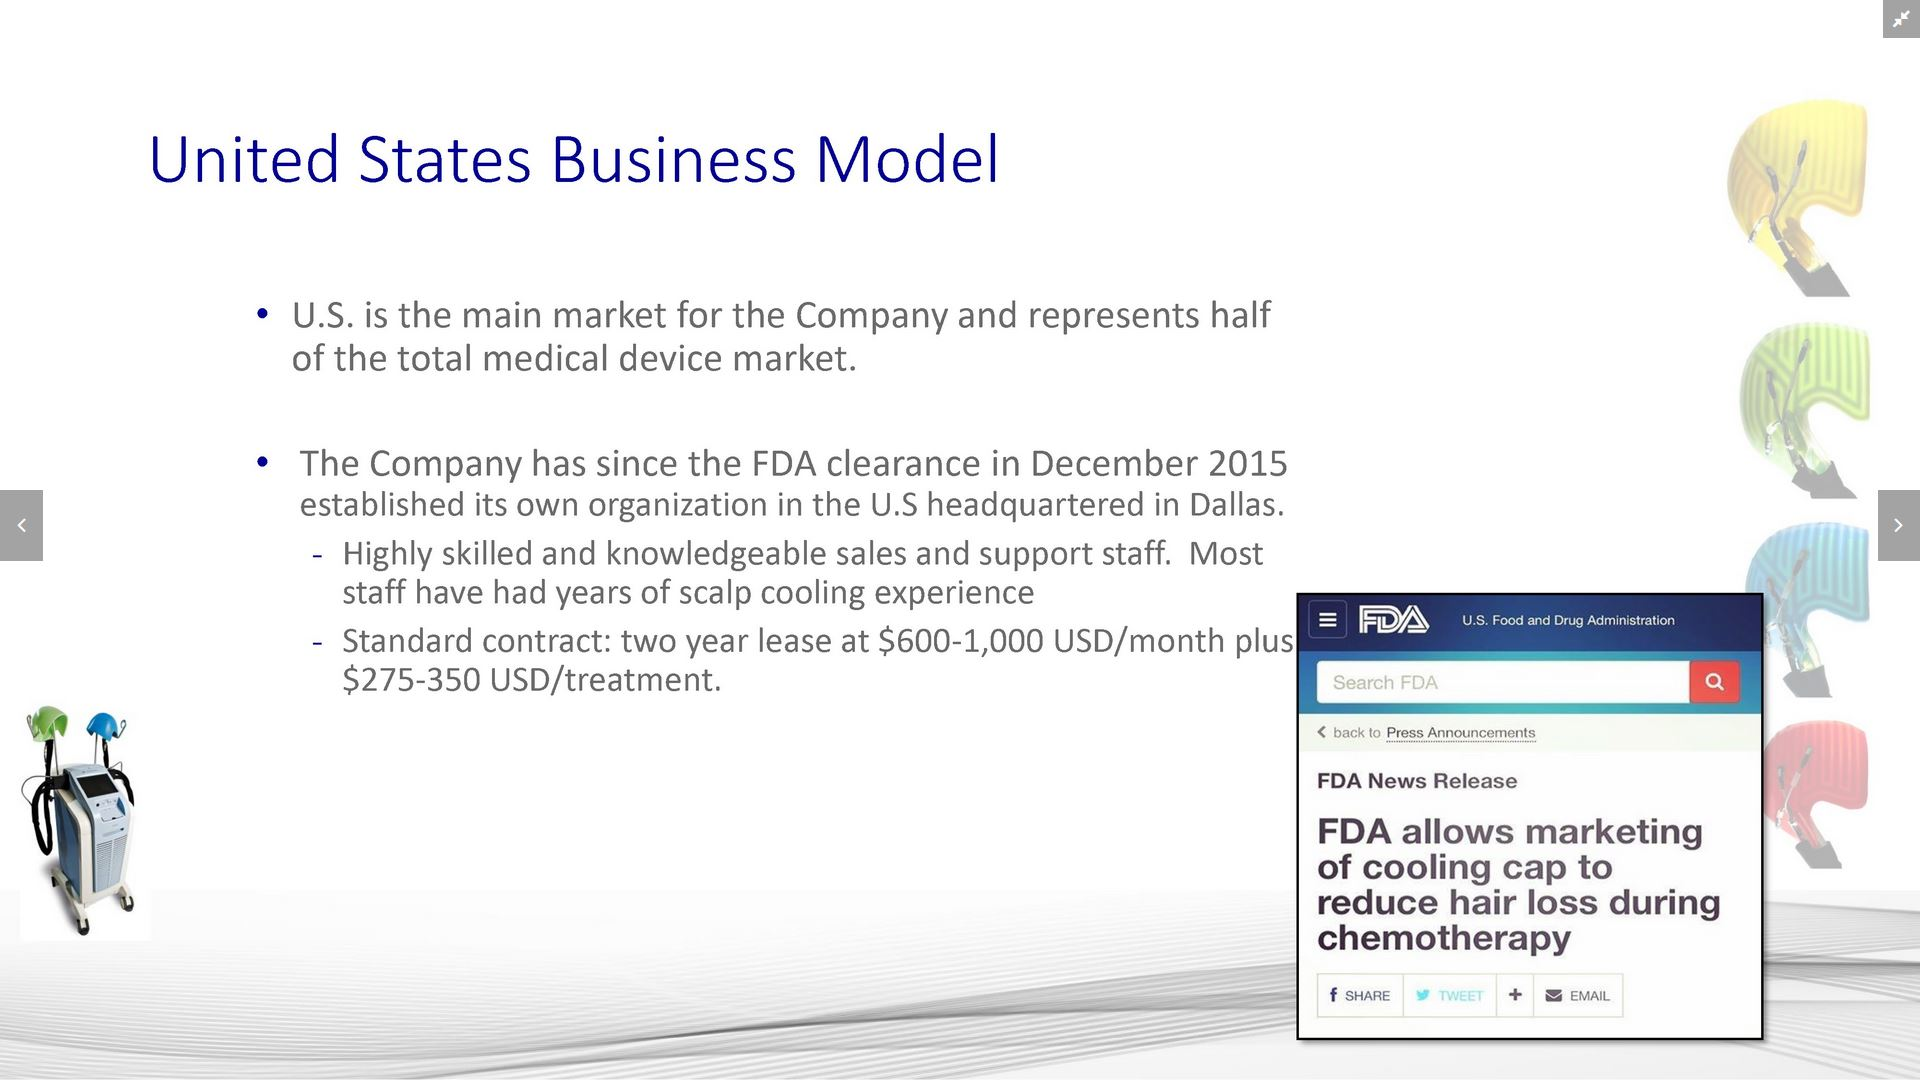 United States Business Model